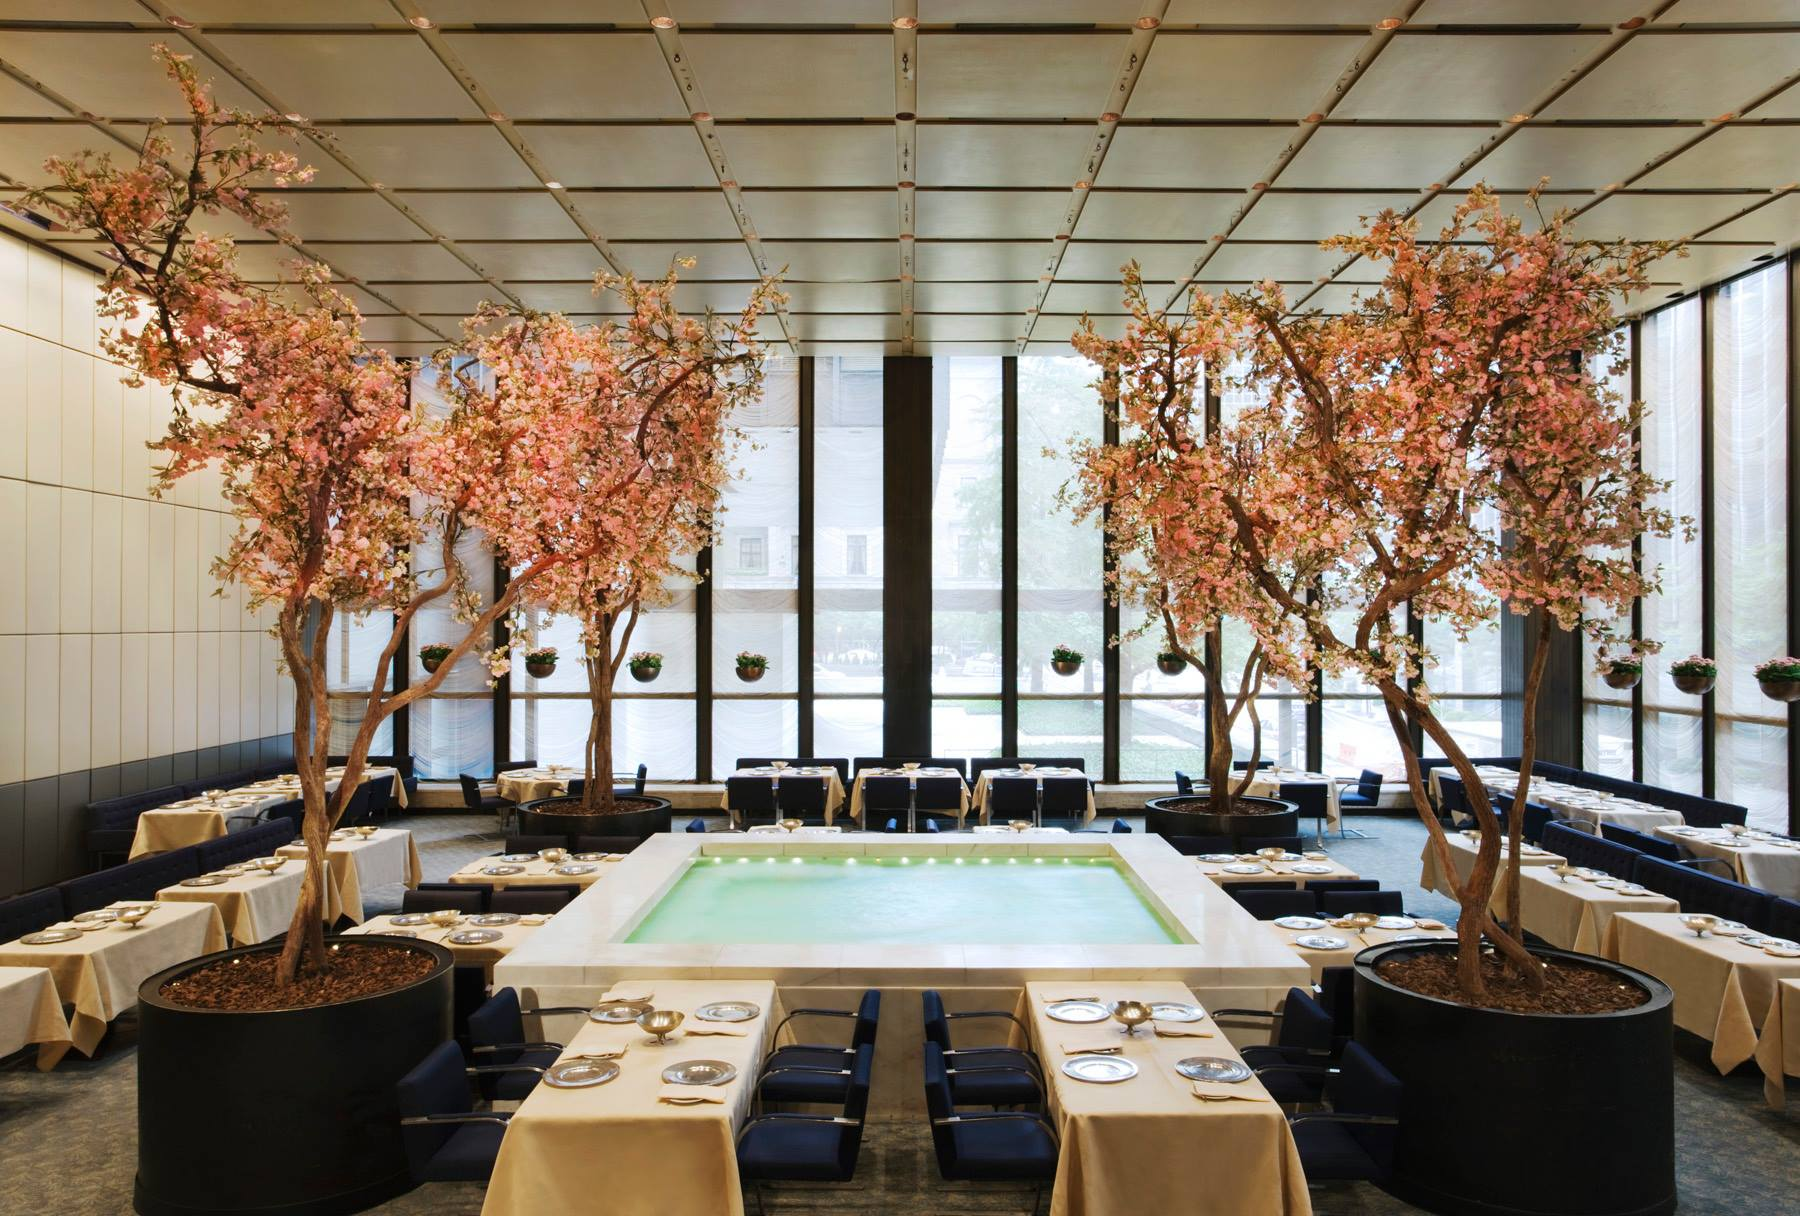 The famous pool in the Four Seasons restaurant